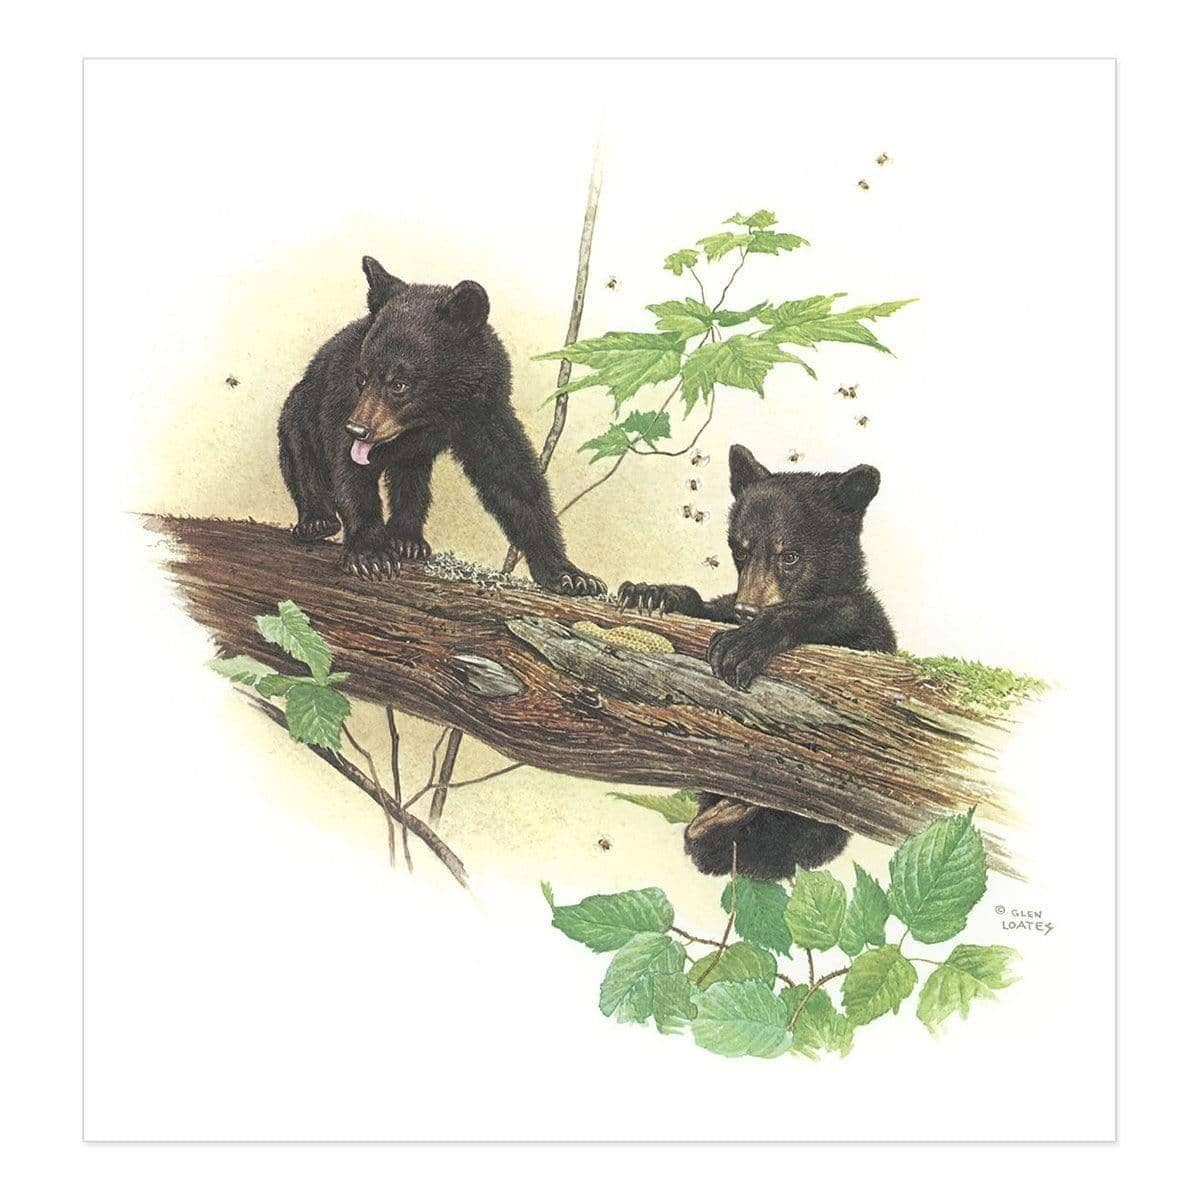 Black Bear Cubs - Art Print by Glen Loates from the Glen Loates Store